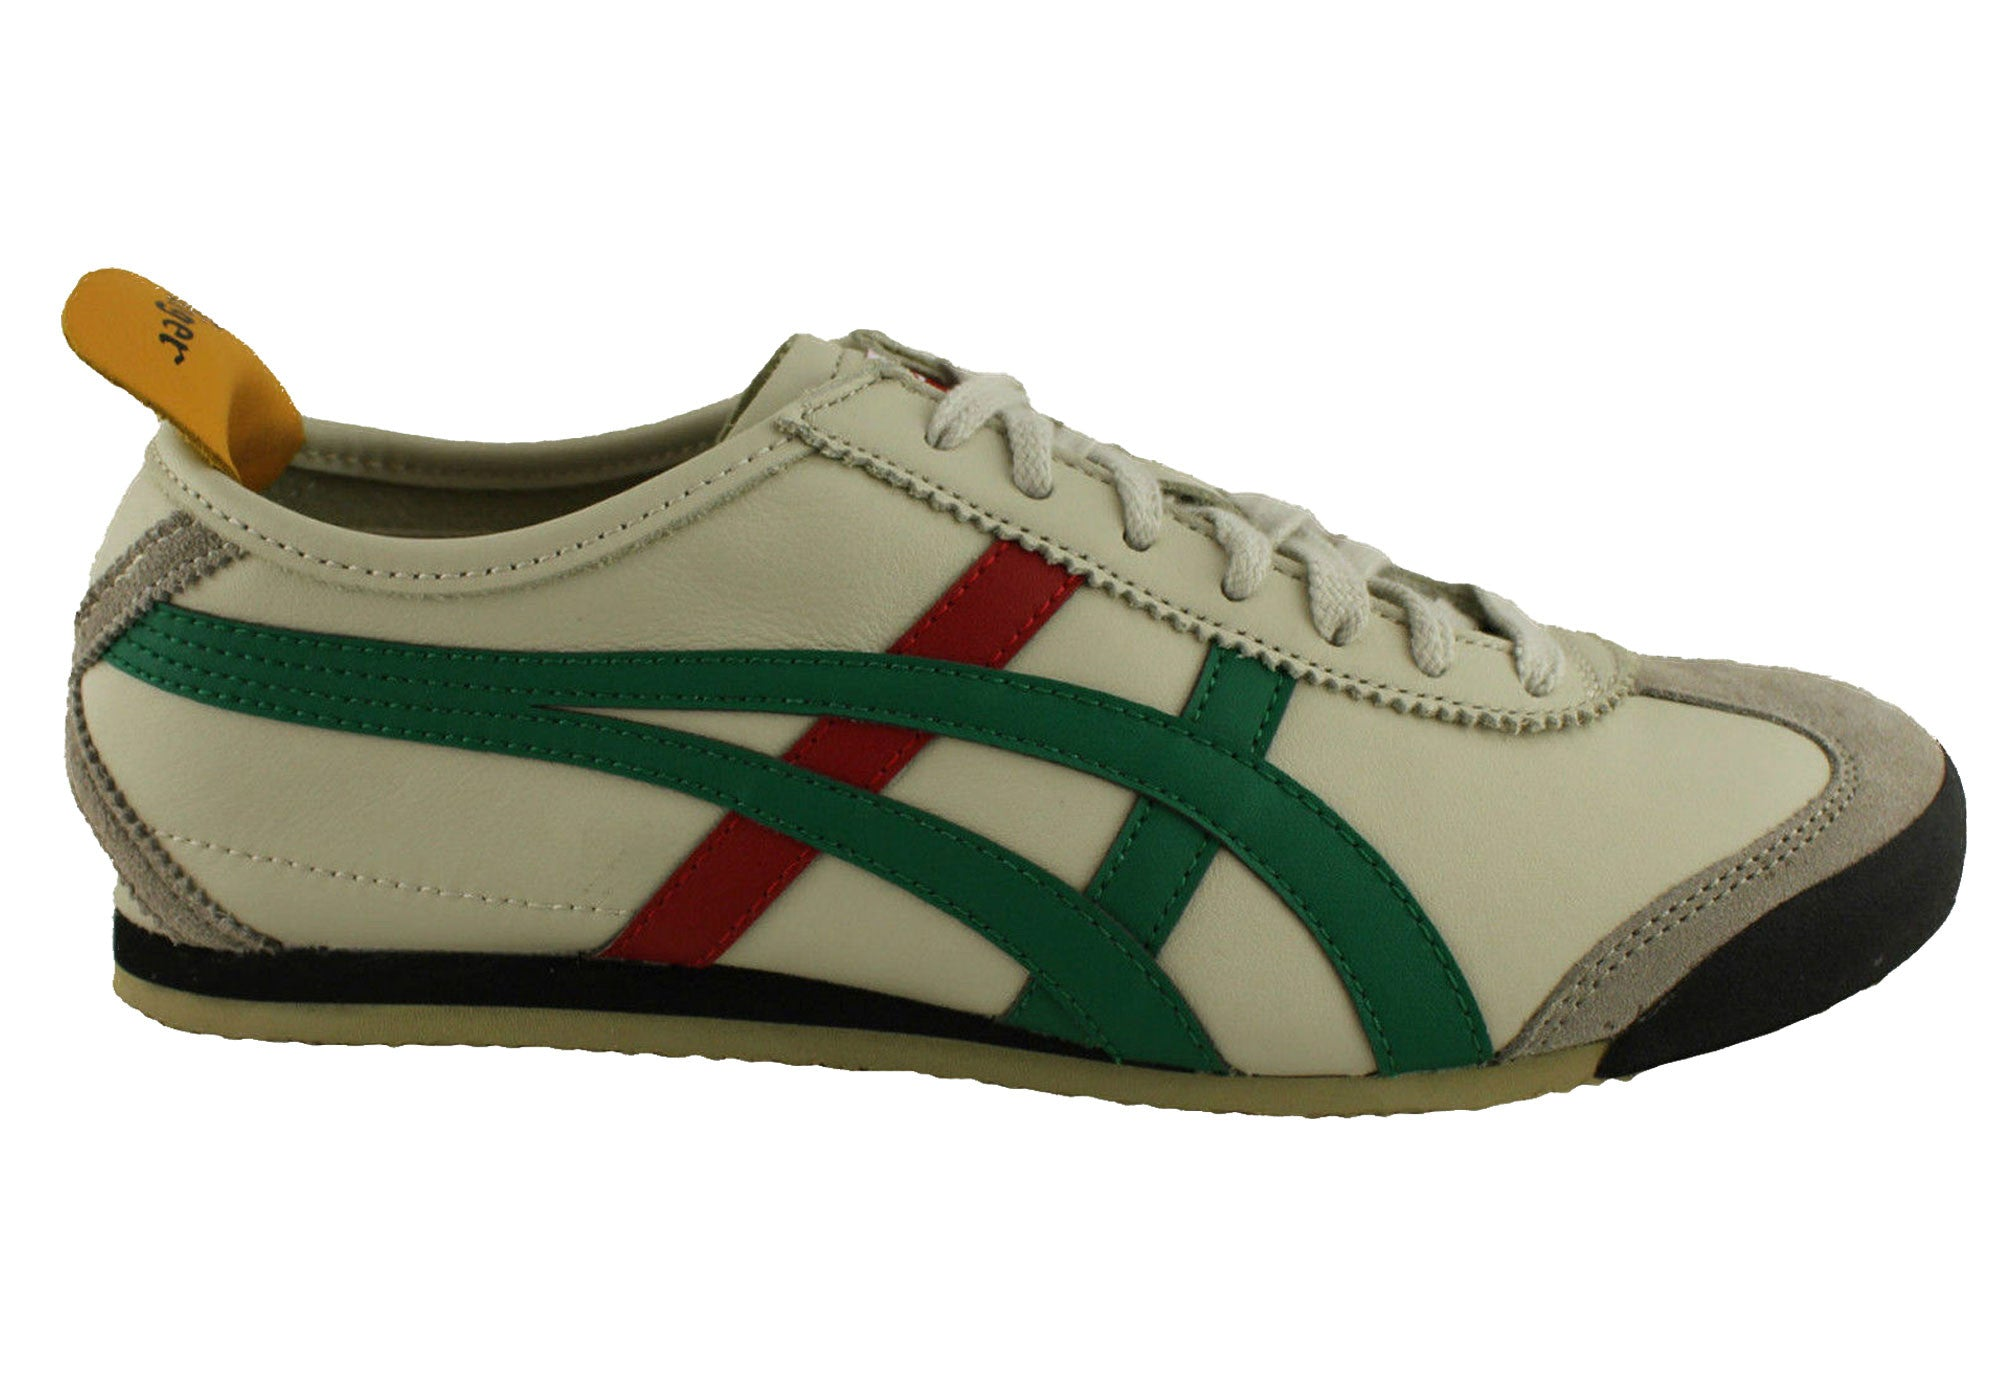 new asics onitsuka tiger mexico 66 mens casual shoes ebay. Black Bedroom Furniture Sets. Home Design Ideas